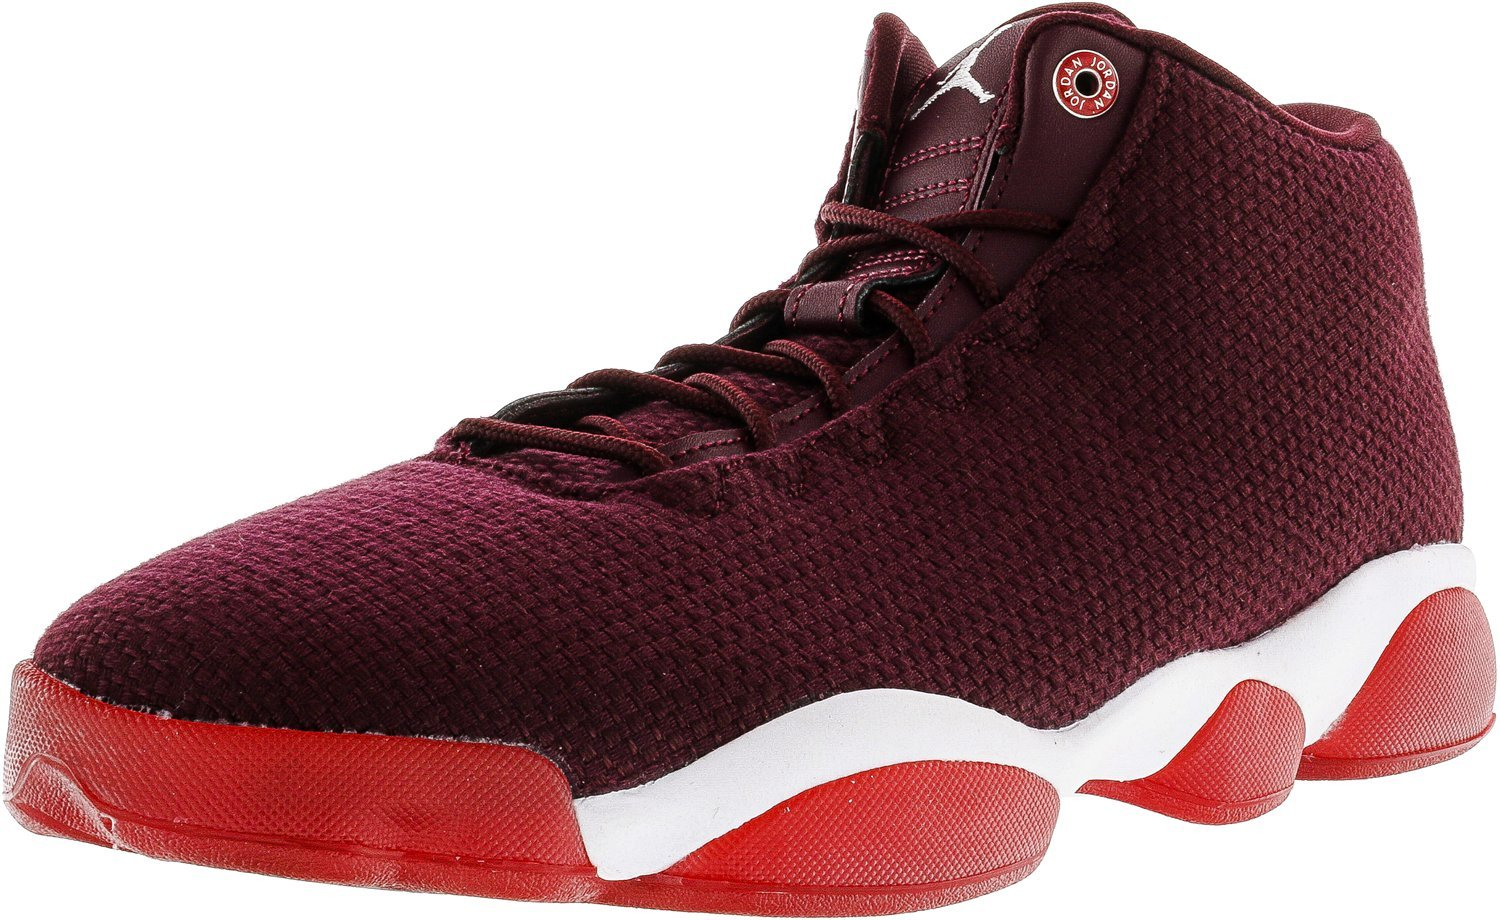 Nike Herren 845098-600 Basketballschuhe  42.5 EU|Weinrot (Night Maroon/White/Gym Red)